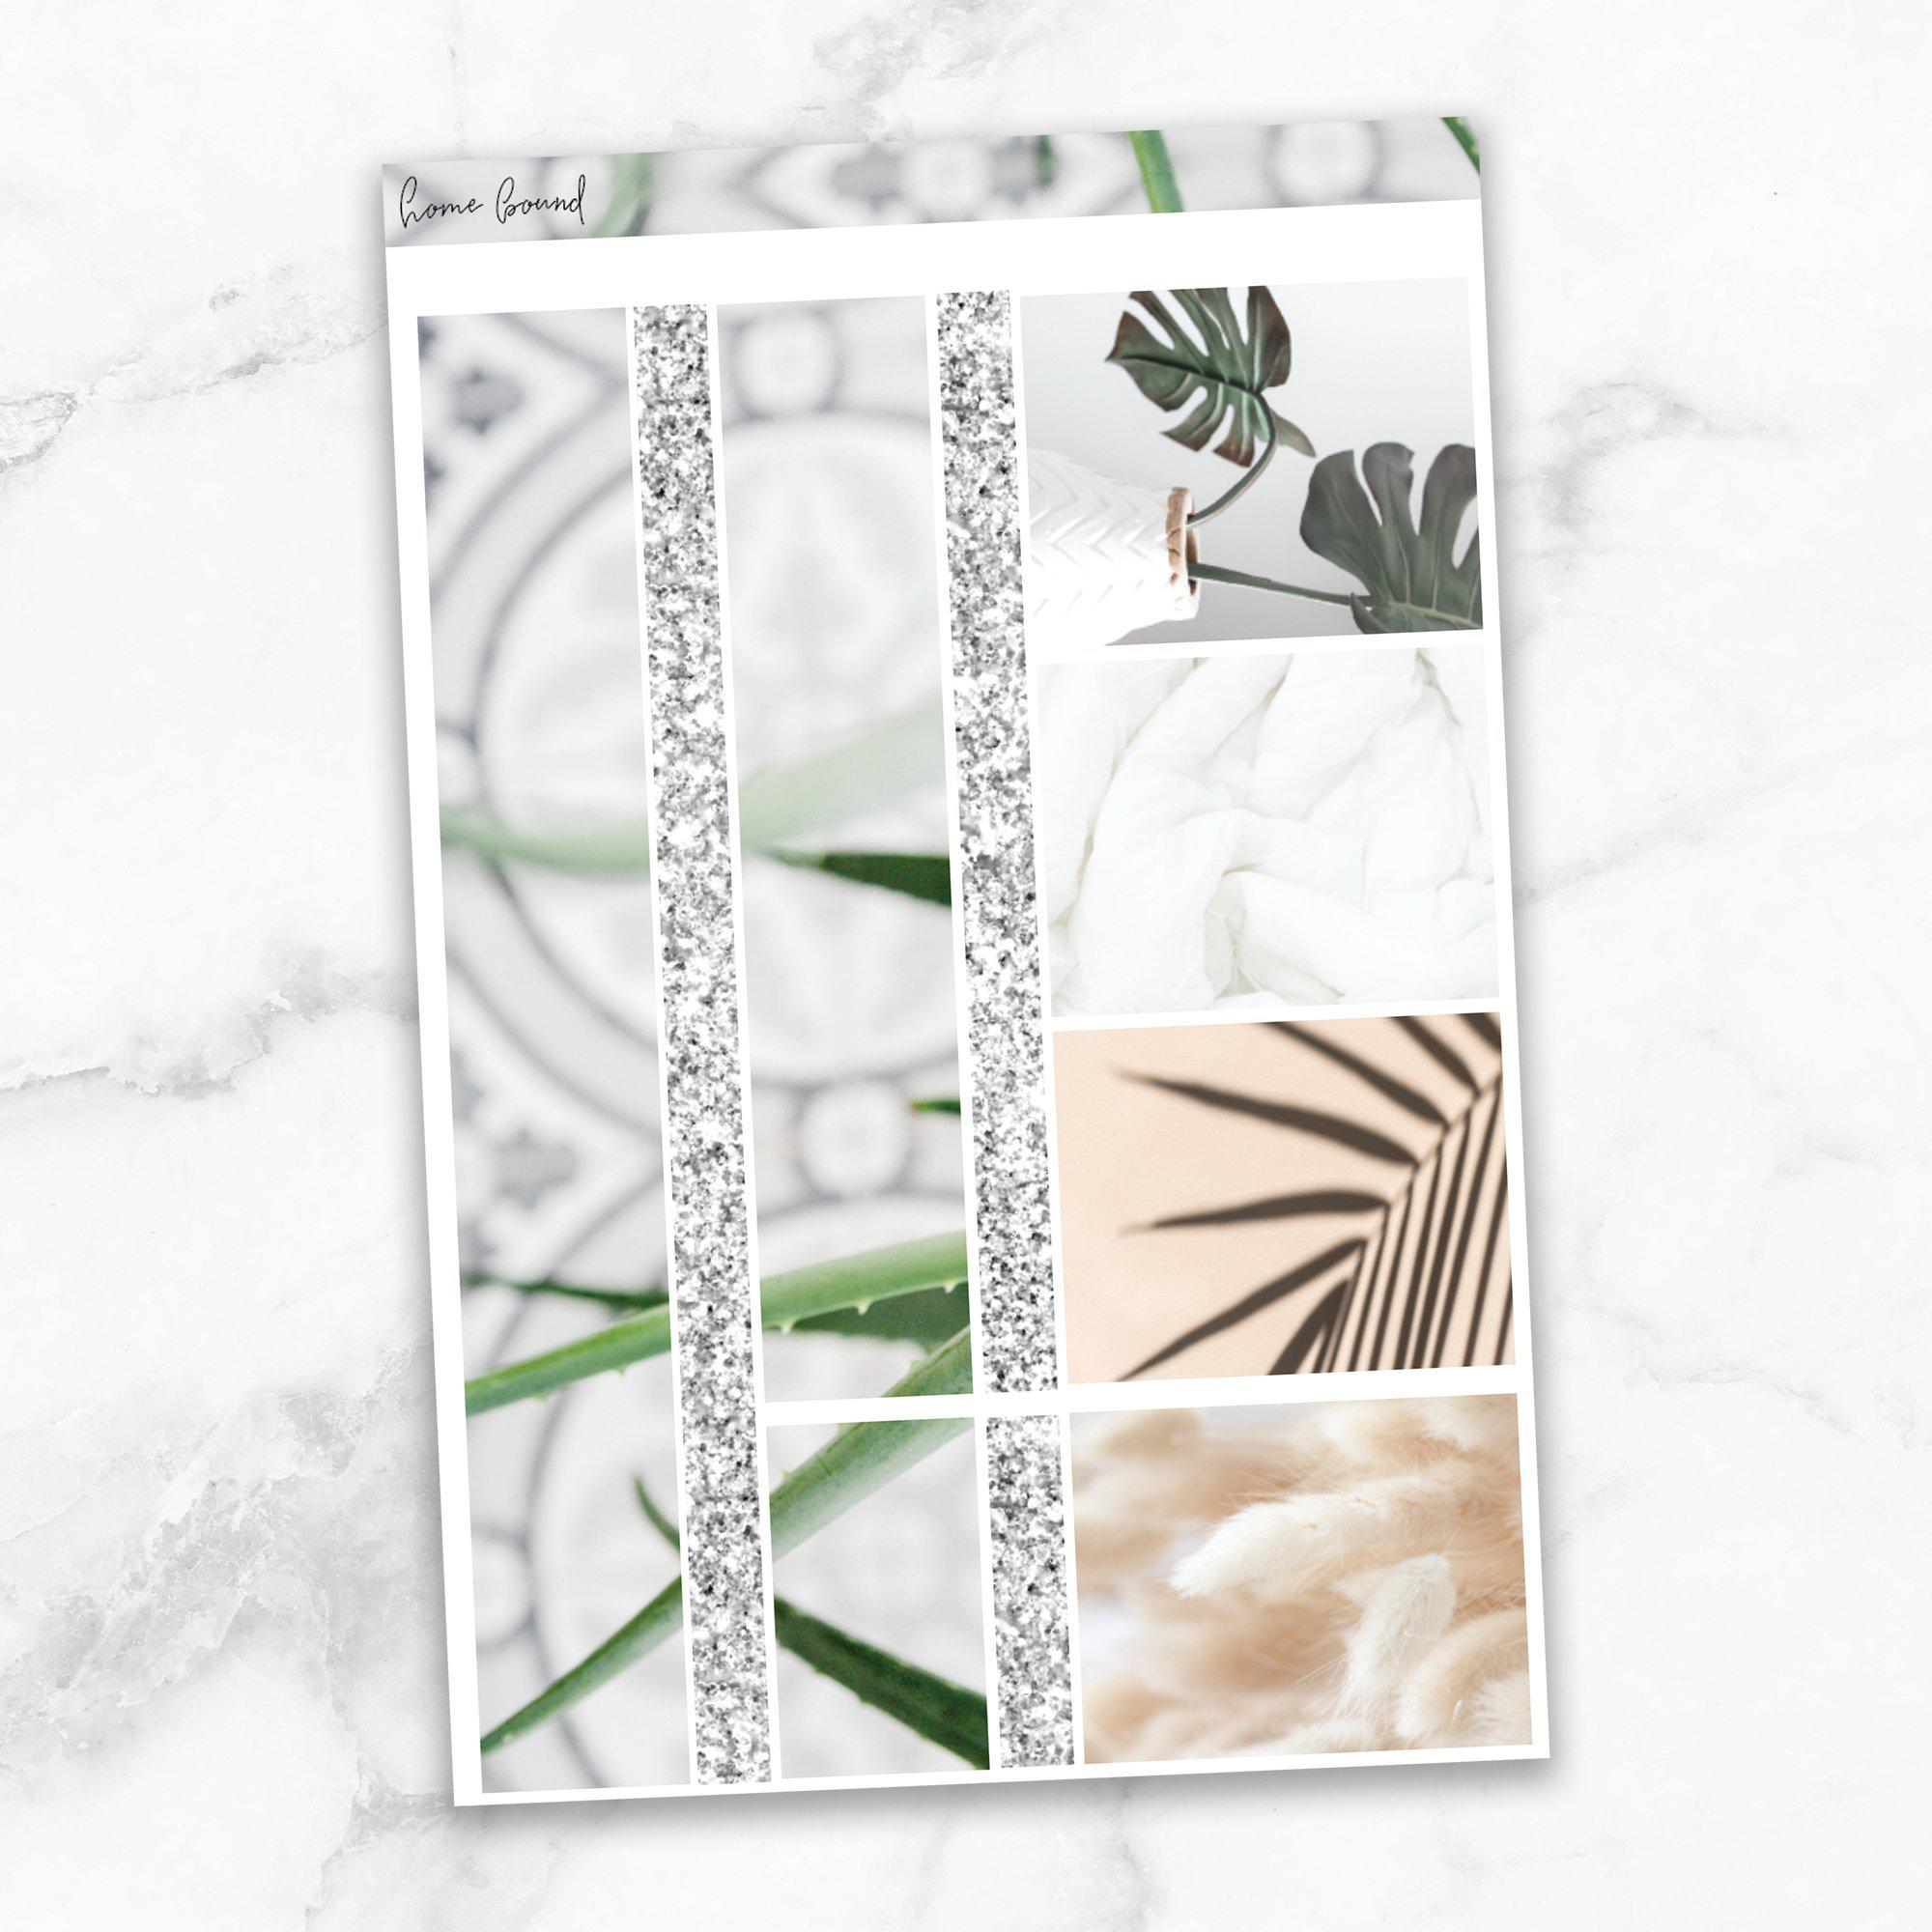 HOMEBOUND Washi Sheet Stickers-The GP Studio